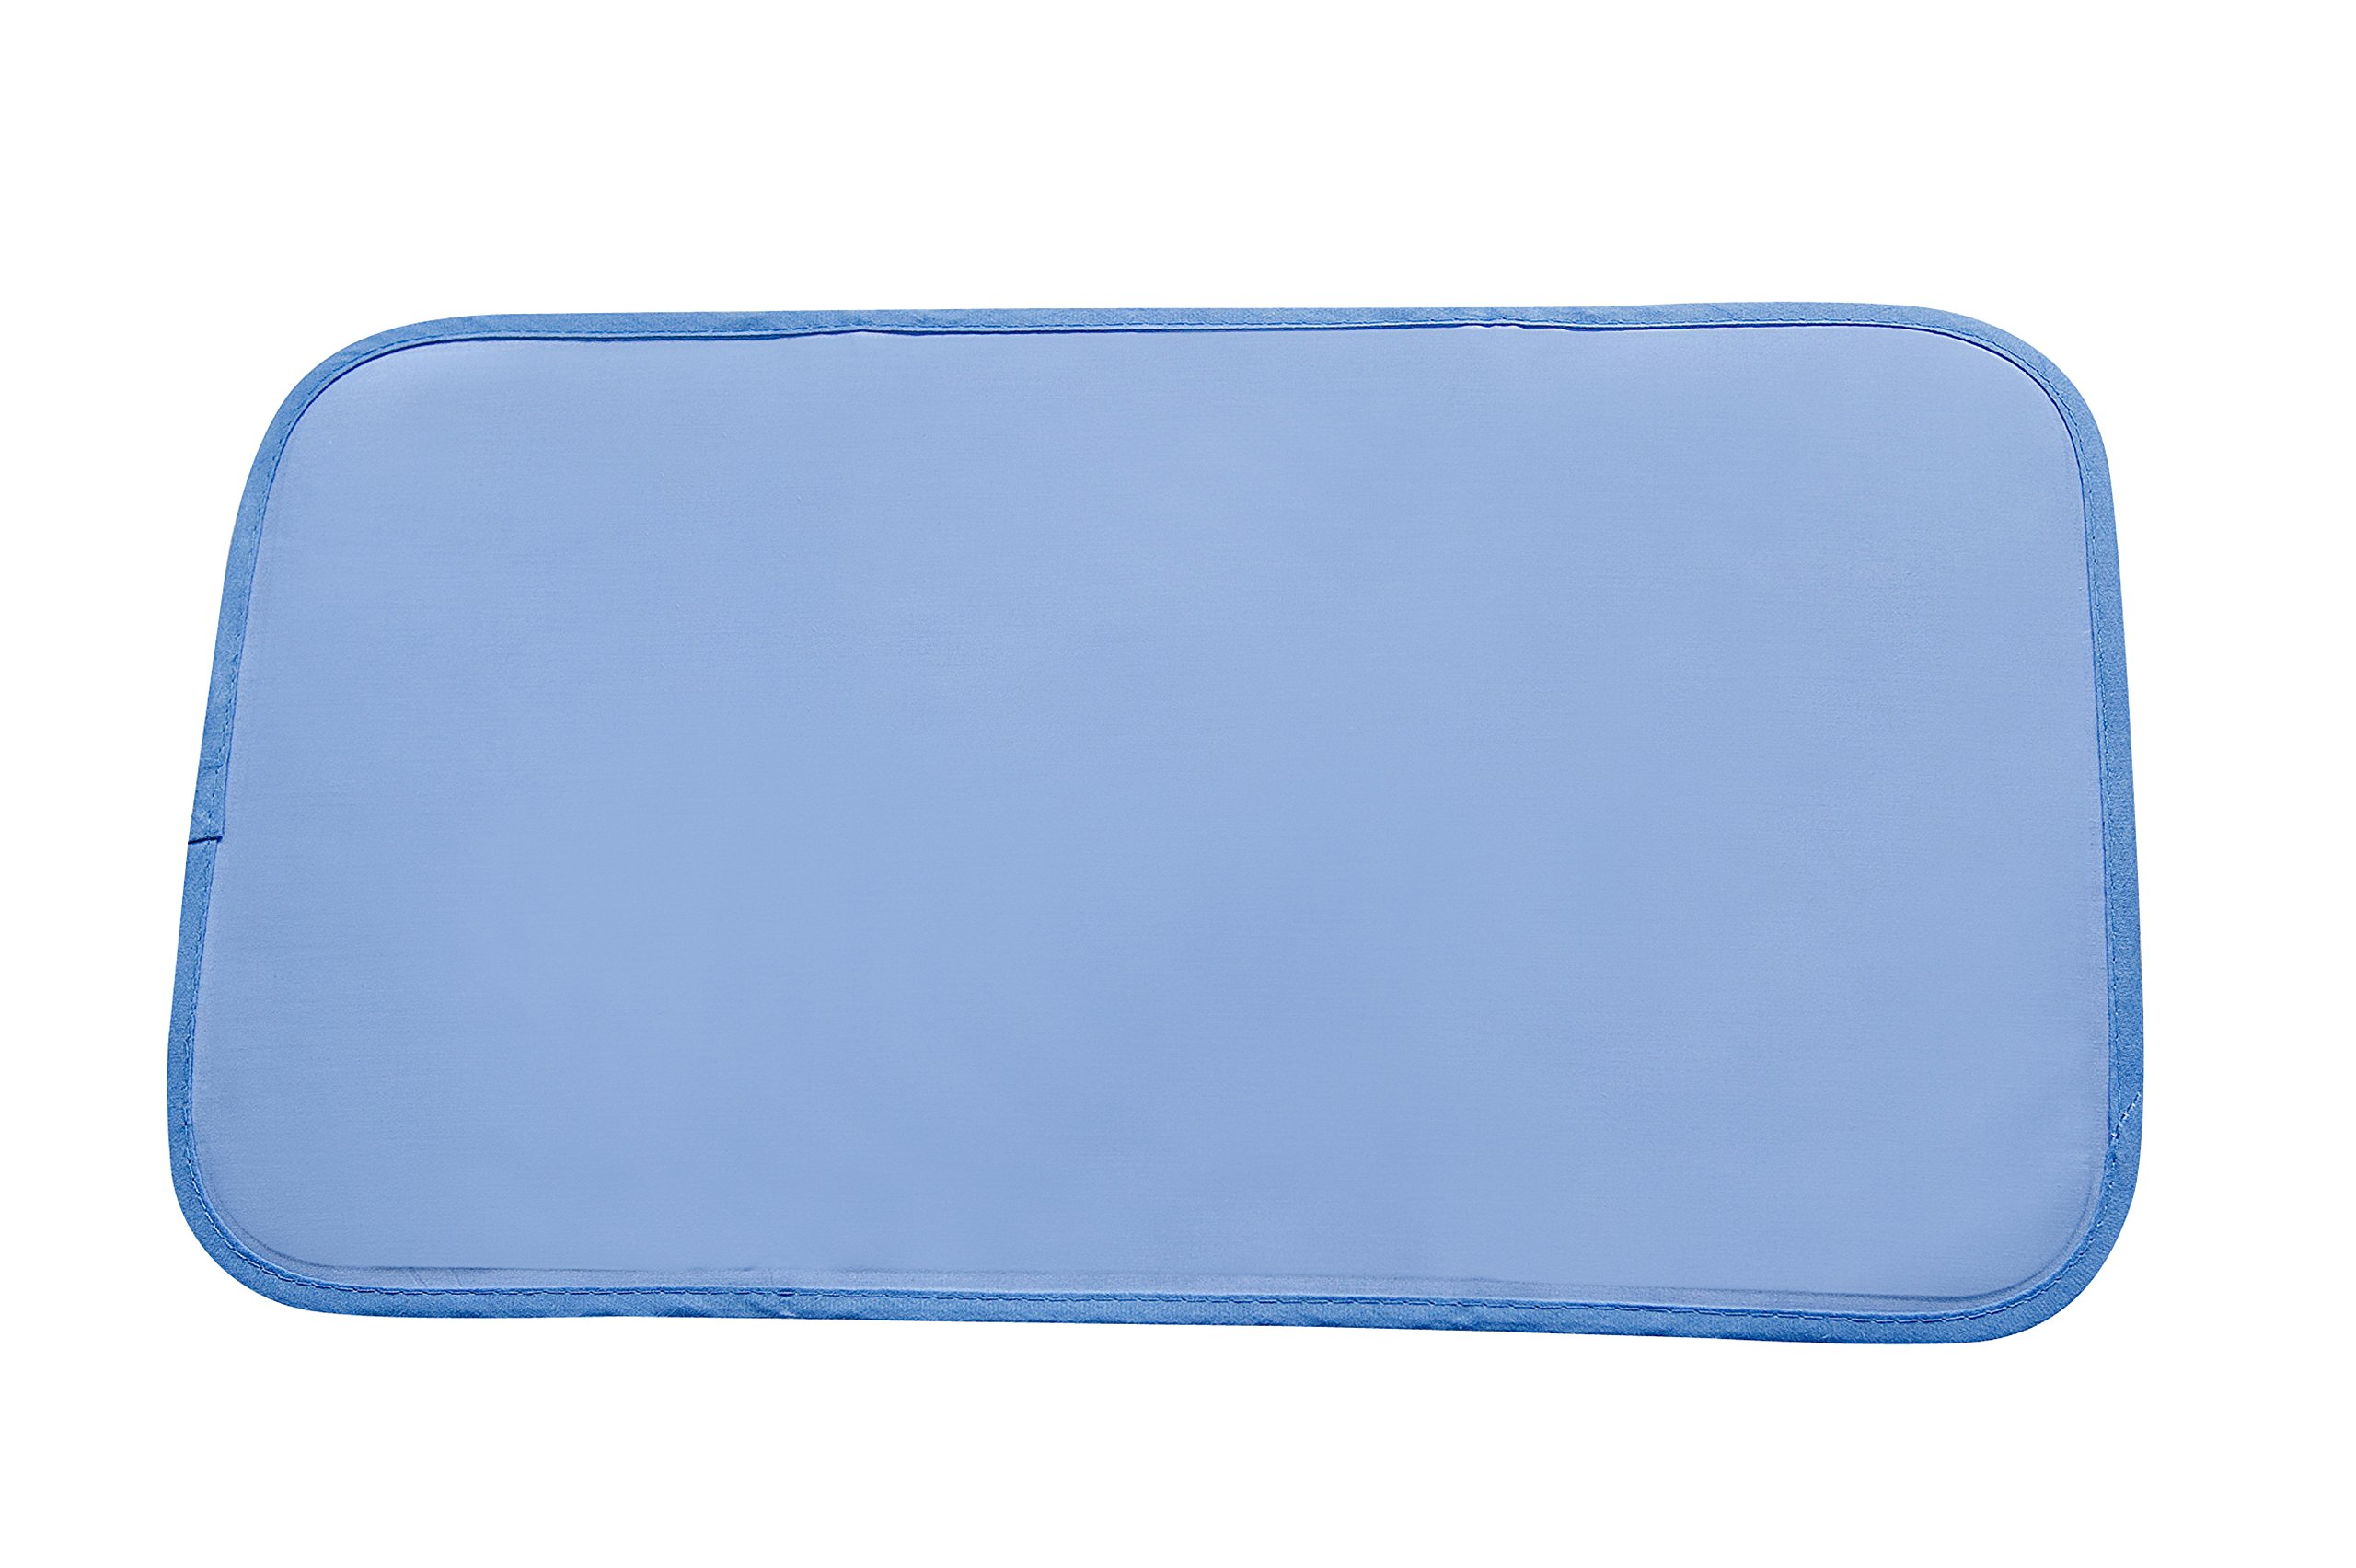 cool dust shredded to sleep you head cold tencel cover an made supports memory is foam product pillow white and material micro with keep neck shreddedgel rest dsc gel during resistant index of while mite hypoallergenic